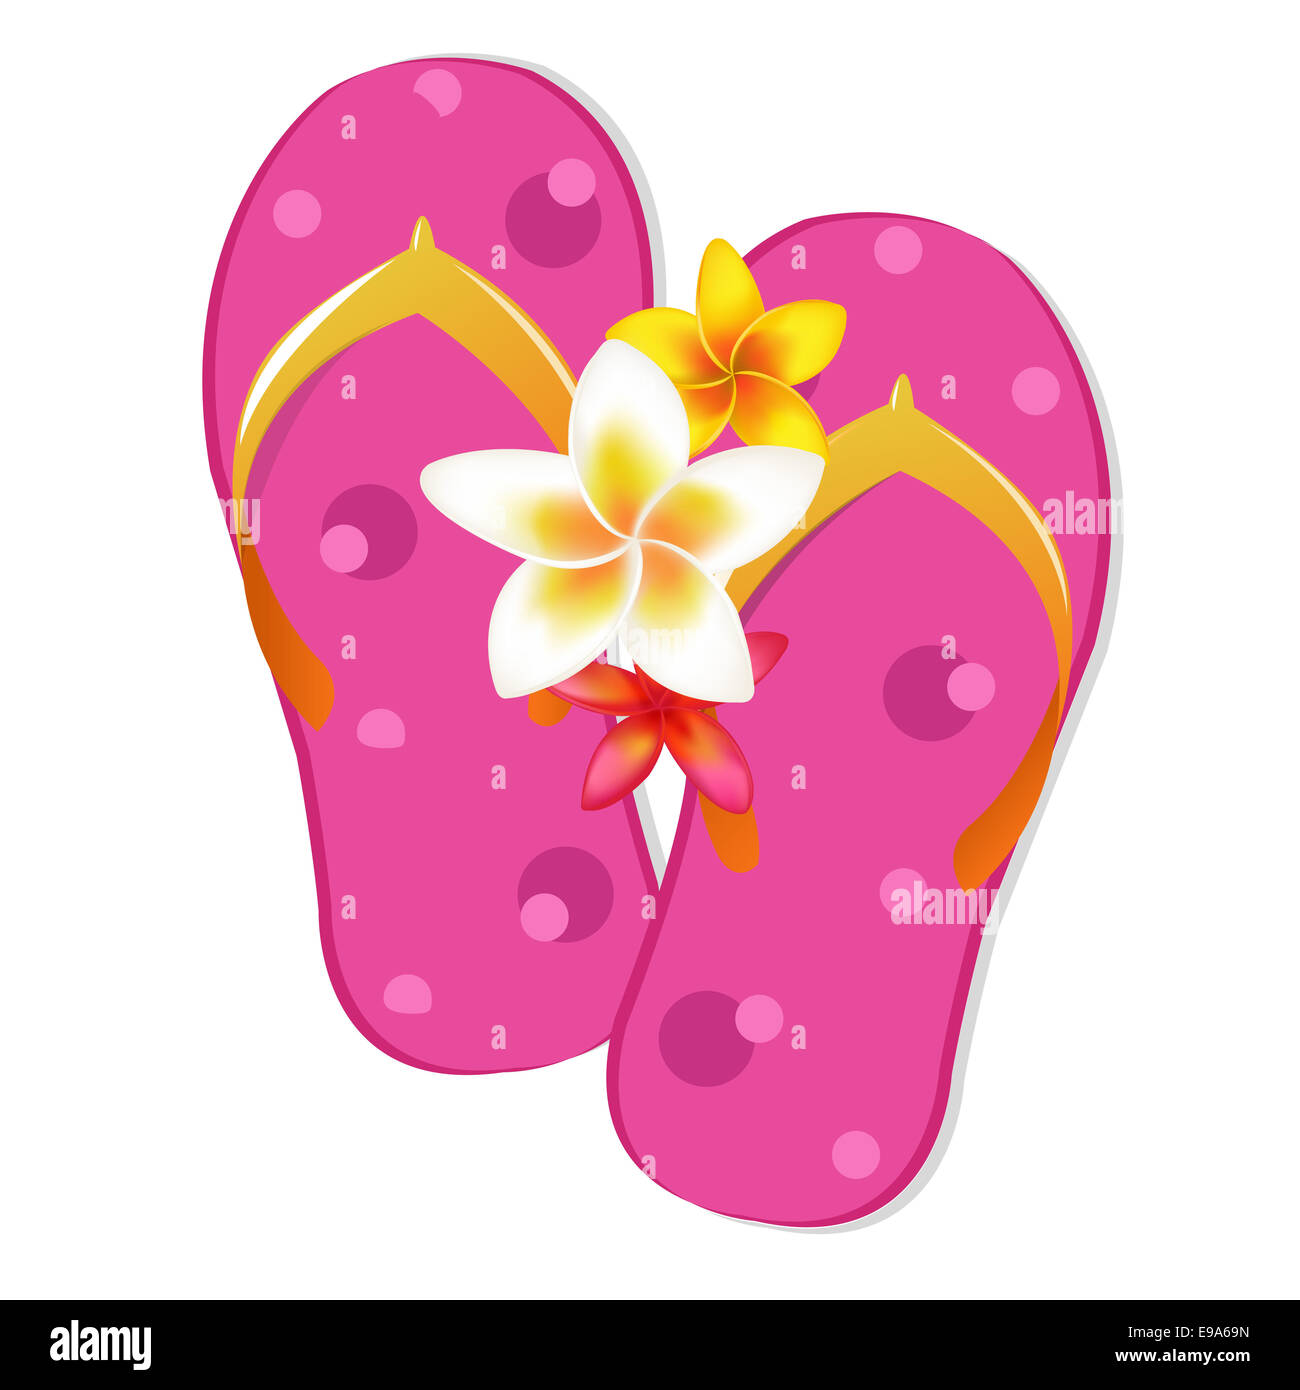 Flip Flop Sandals With Plumeria Flowers Stock Photo 74597873 Alamy